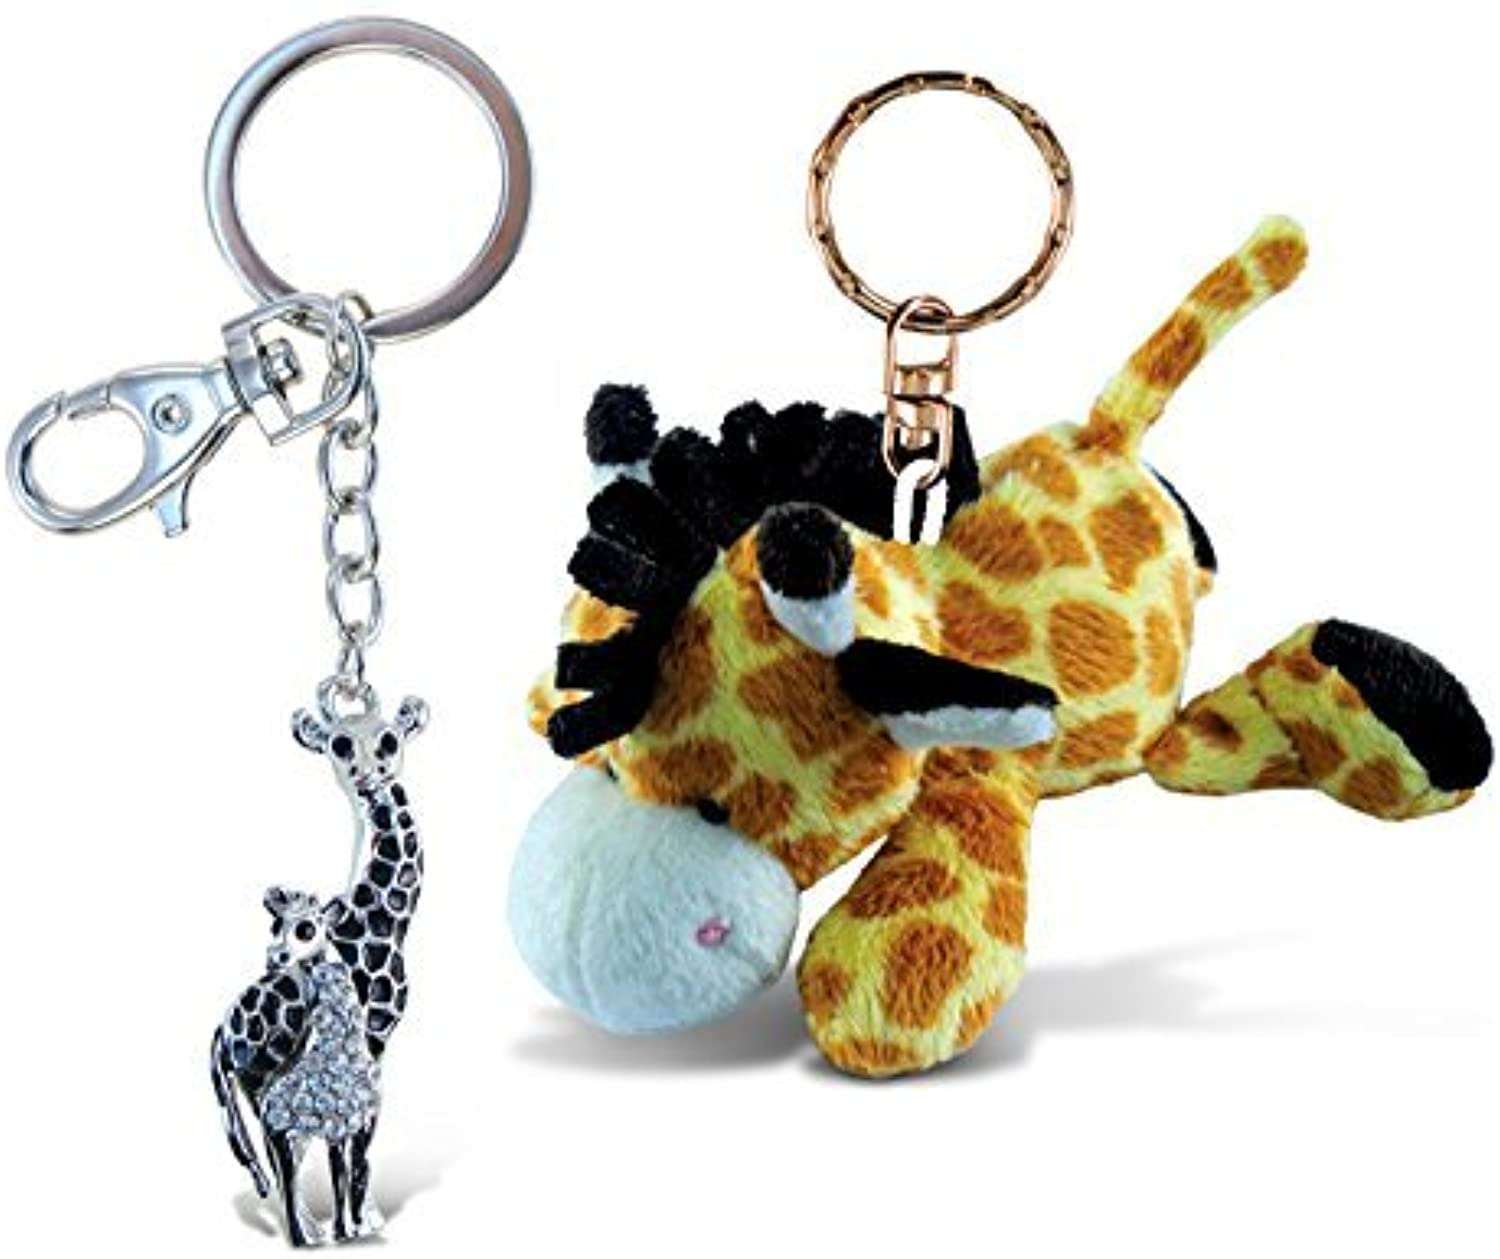 Puzzled Giraffe Super Soft Plush and Sparkling Charm  Zoo Animals Theme  Set of 2  Unique and Useful Gift and Souvenir  Item  K58236617 by Puzzled